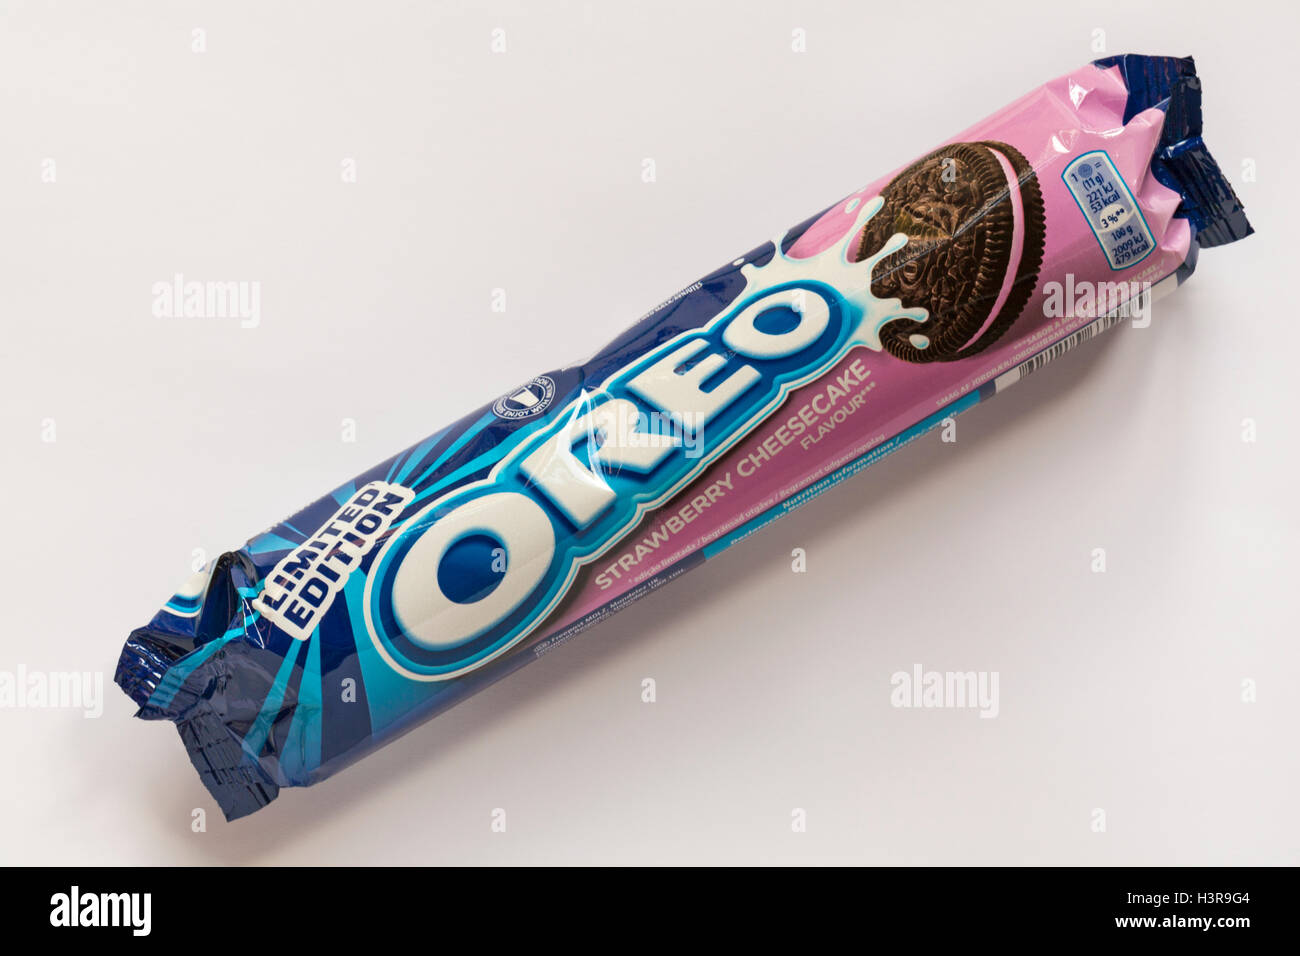 Packet of limited edition Strawberry Cheesecake flavour Oreo biscuits isolated on white background - Stock Image